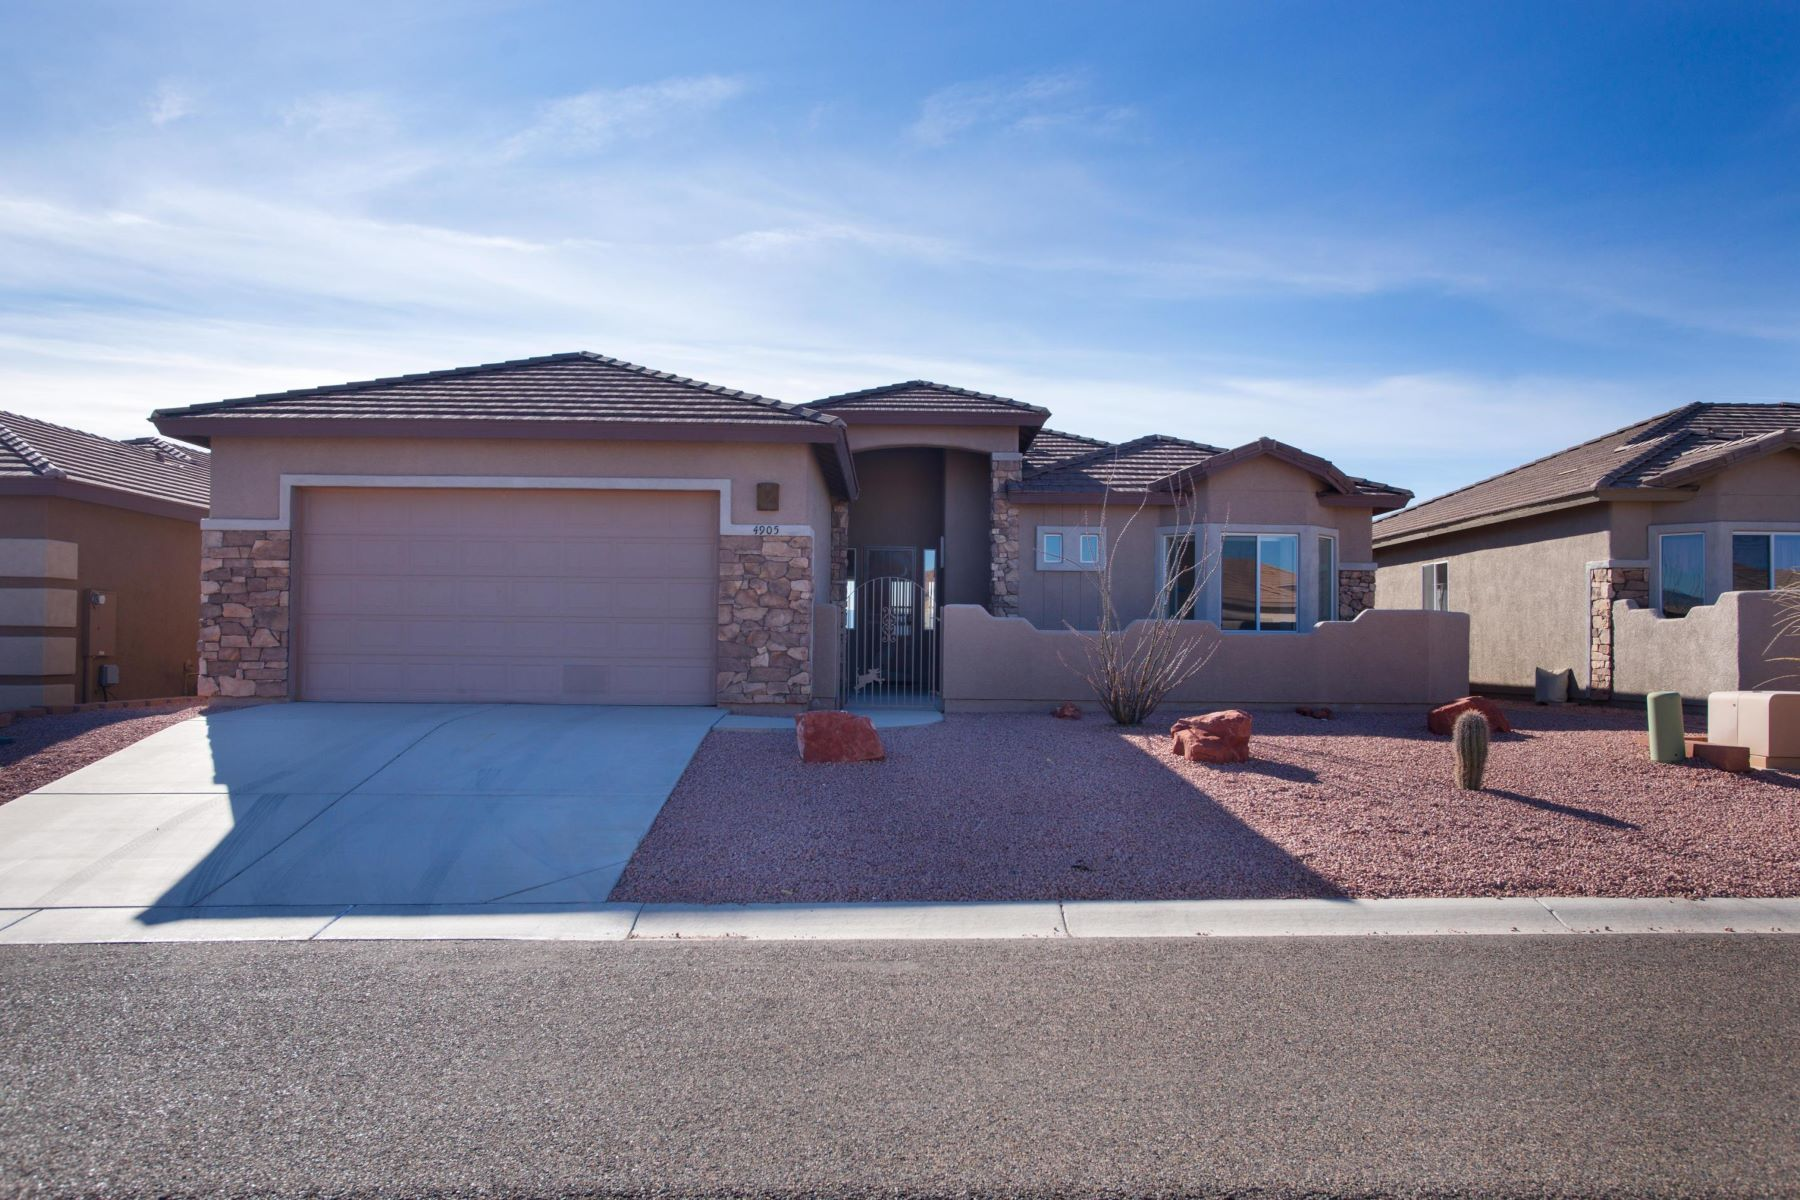 Single Family Homes for Sale at Executive Southwest Home 4905 E Boulder Canyon Drive Cornville, Arizona 86325 United States